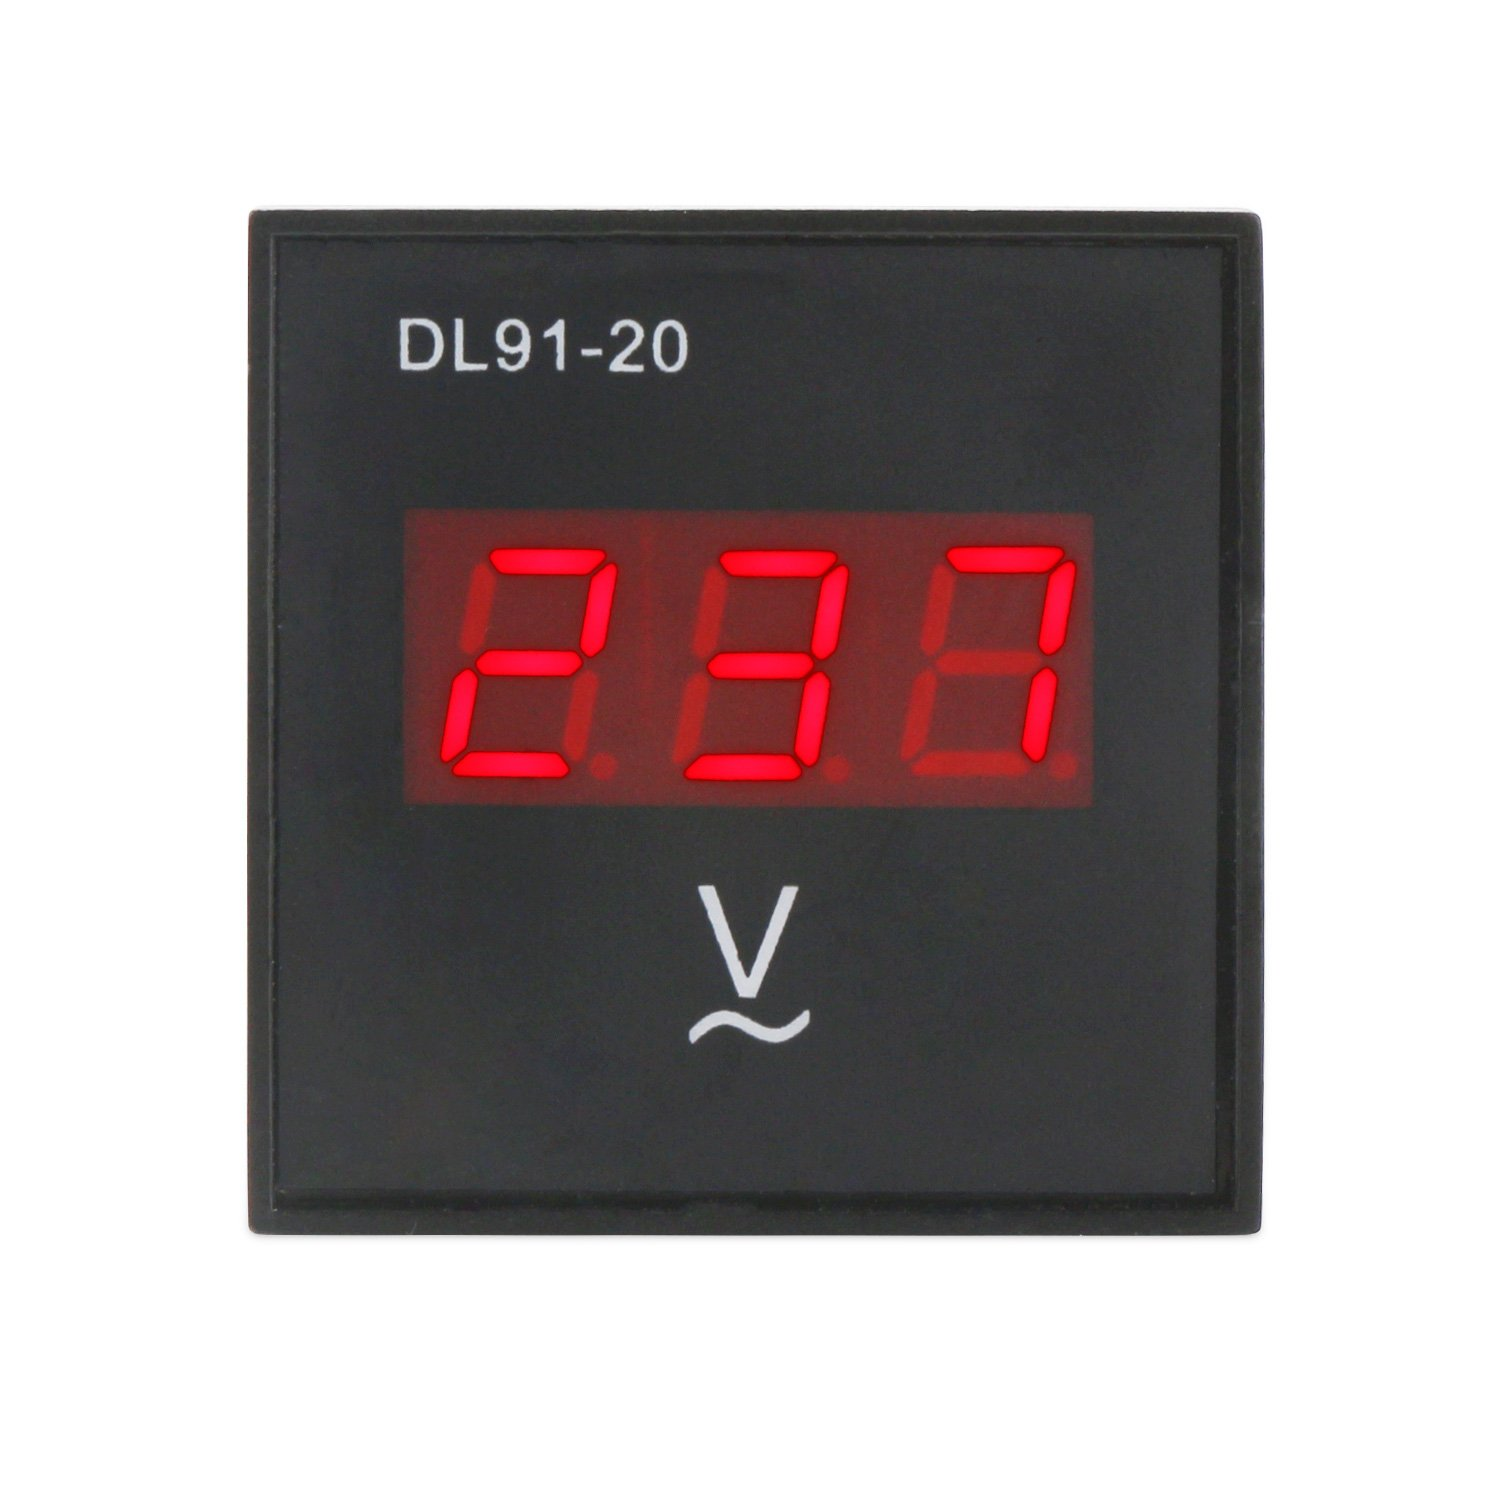 DROK Red LED Digital Voltmeter Panel Meter AC 80-300V Voltage Measuring Detector Gauge 220V Volt Monitor Measurement Tester for Gasoline Generator ...